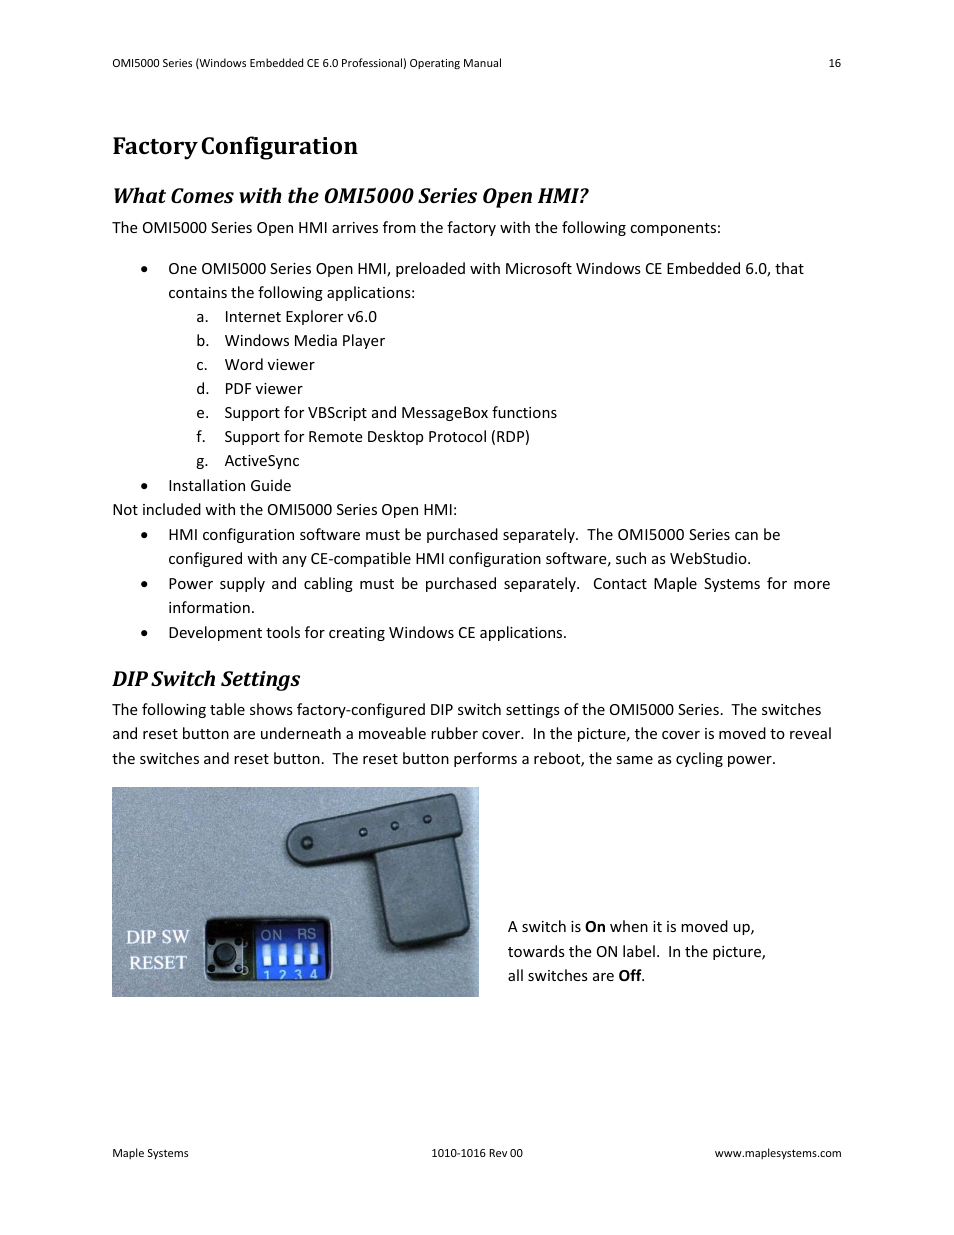 factory configuration what comes with the omi5000 series open hmi rh manualsdir com User Manual Template User Manual PDF